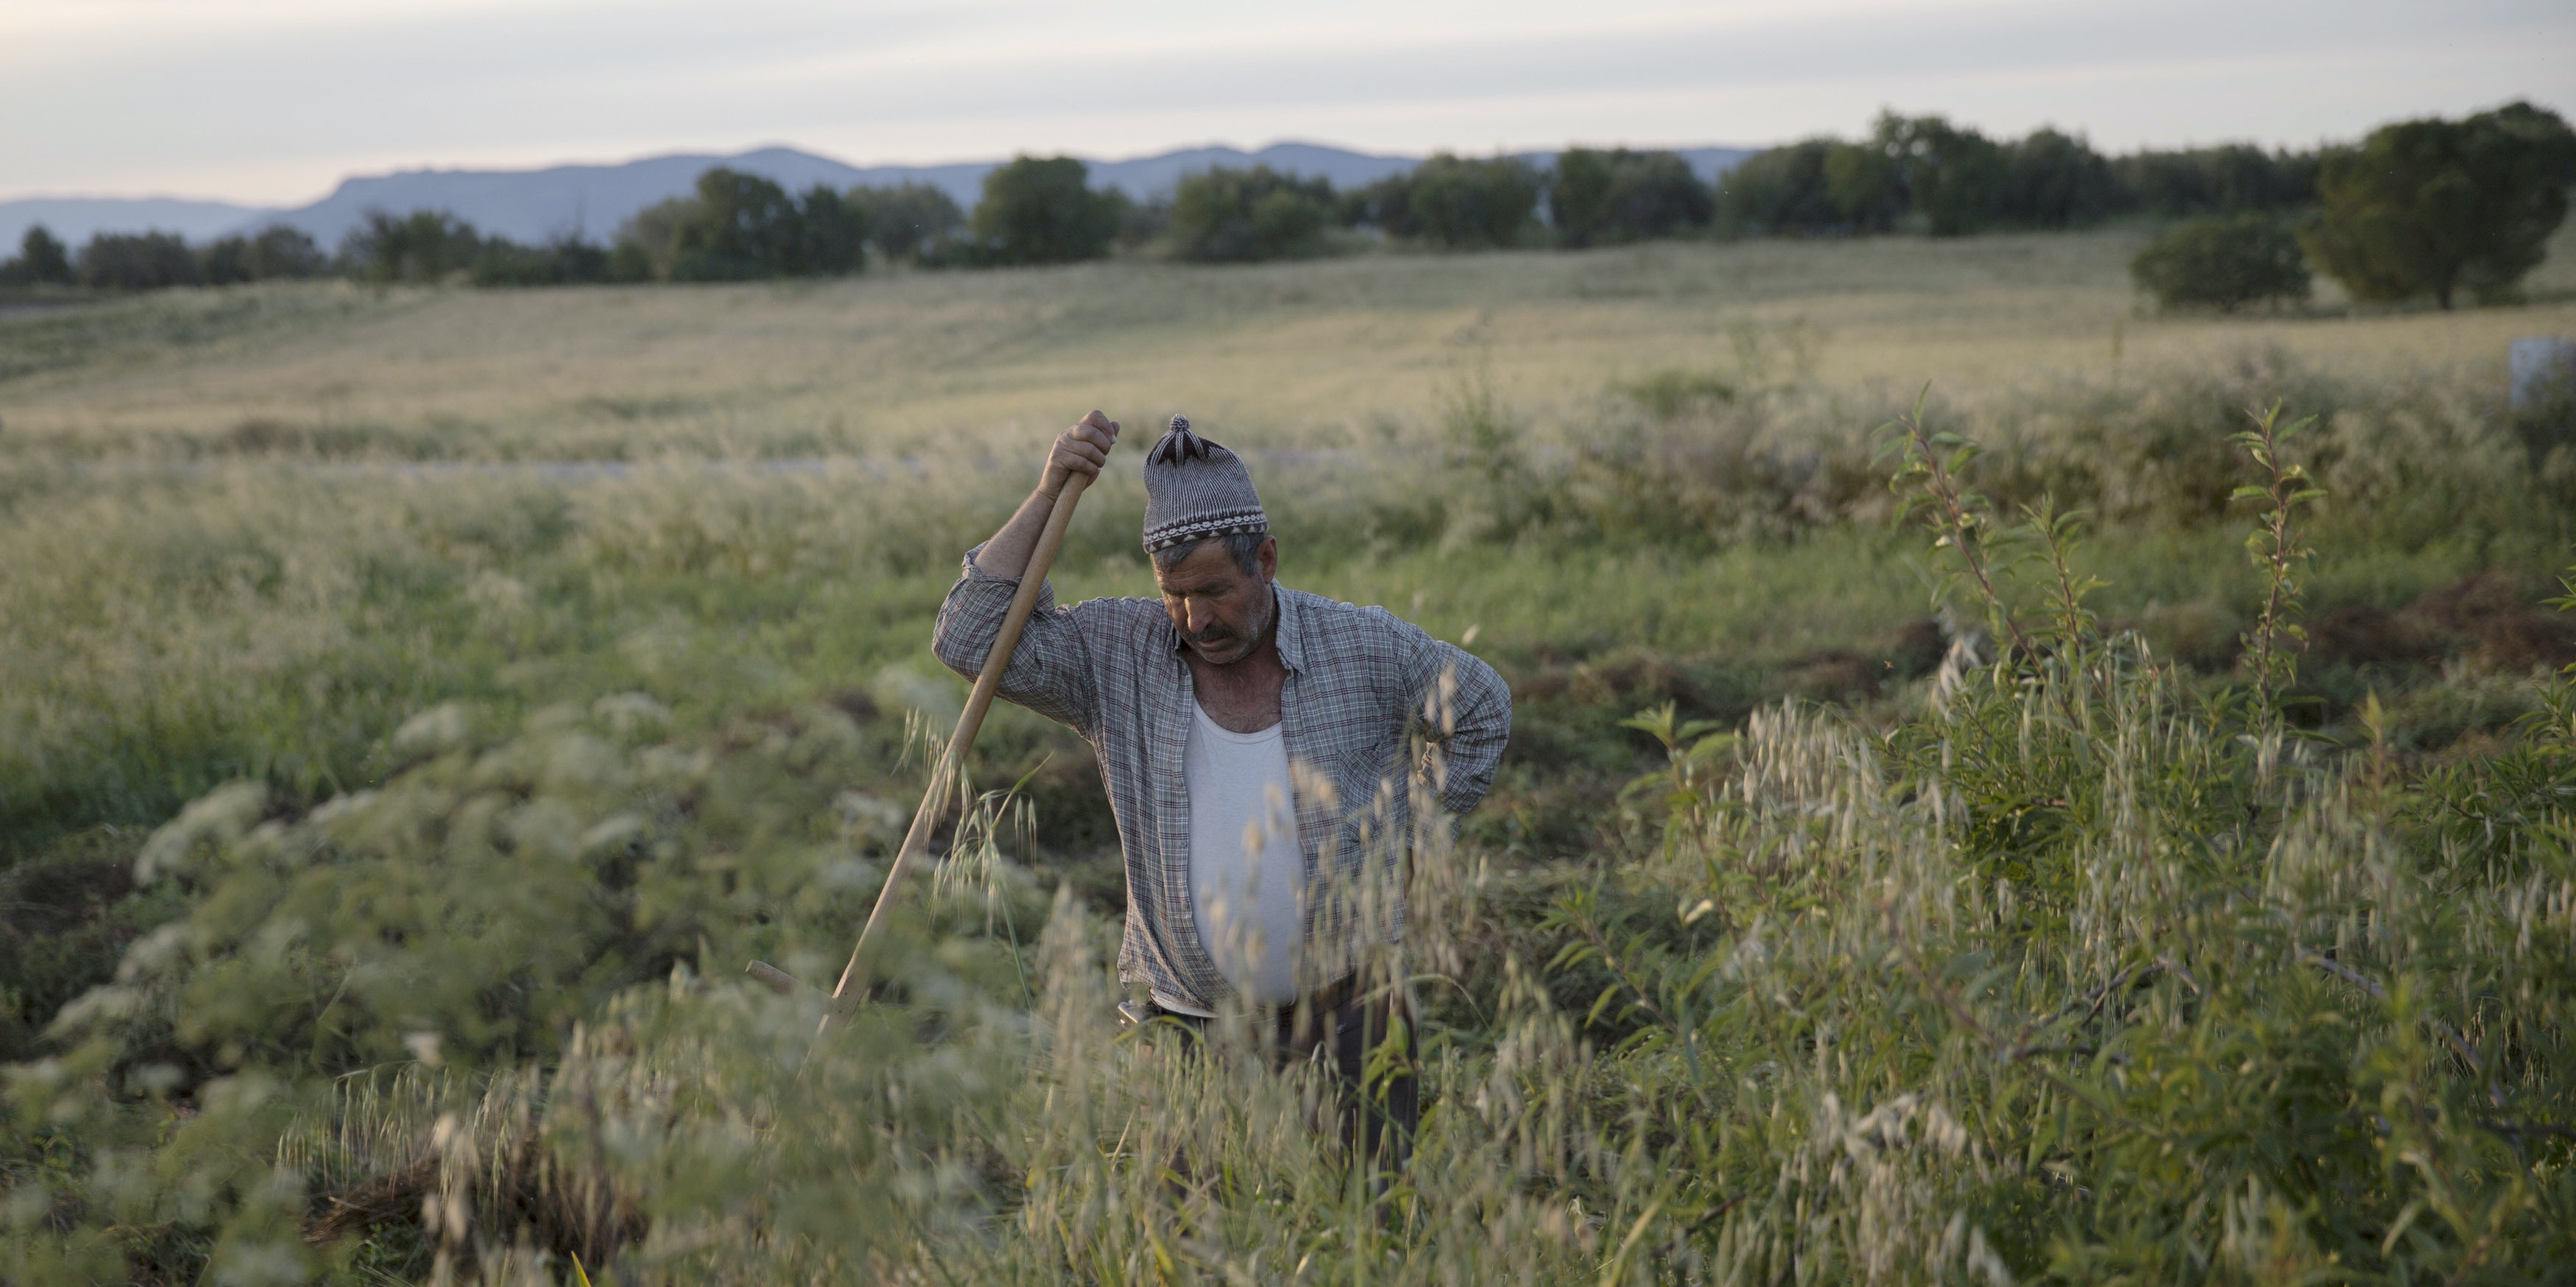 A man pauses while he scythes a crop field in Soma, Turkey.